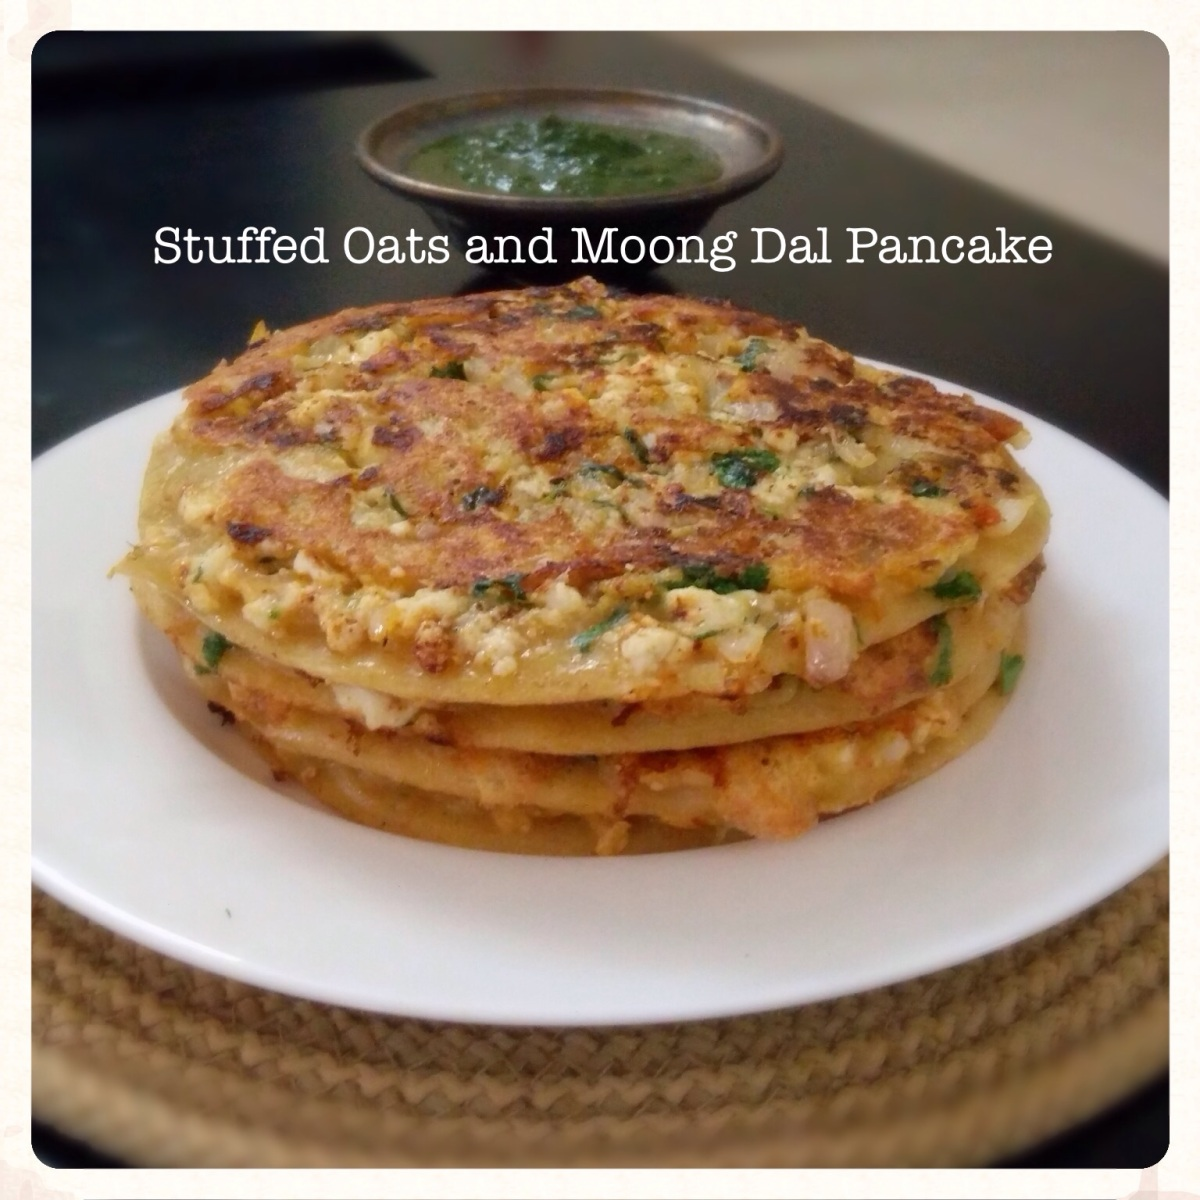 Stuffed Oats and Moong Dal Pancakes (Chila) Recipe